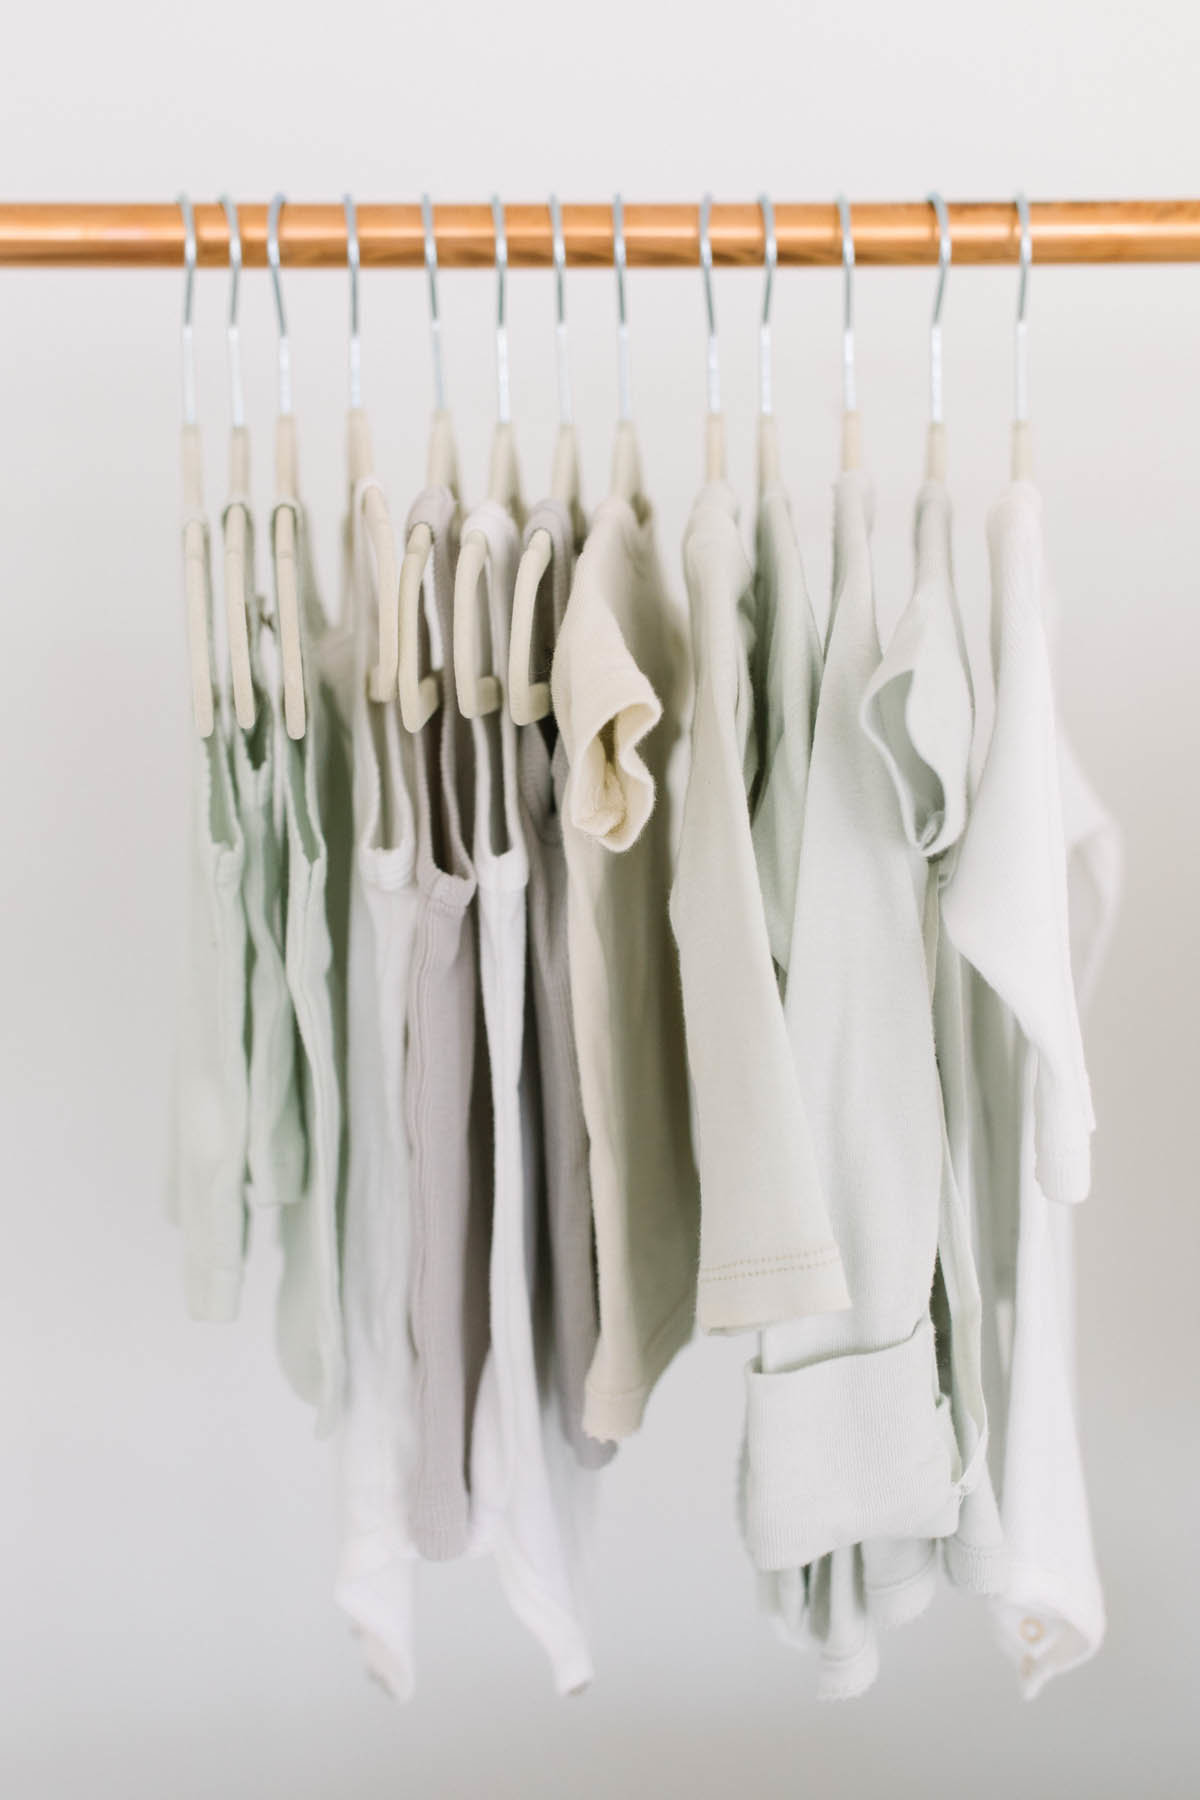 Elle Baker Photography offers a full studio wardrobe for her baby clients